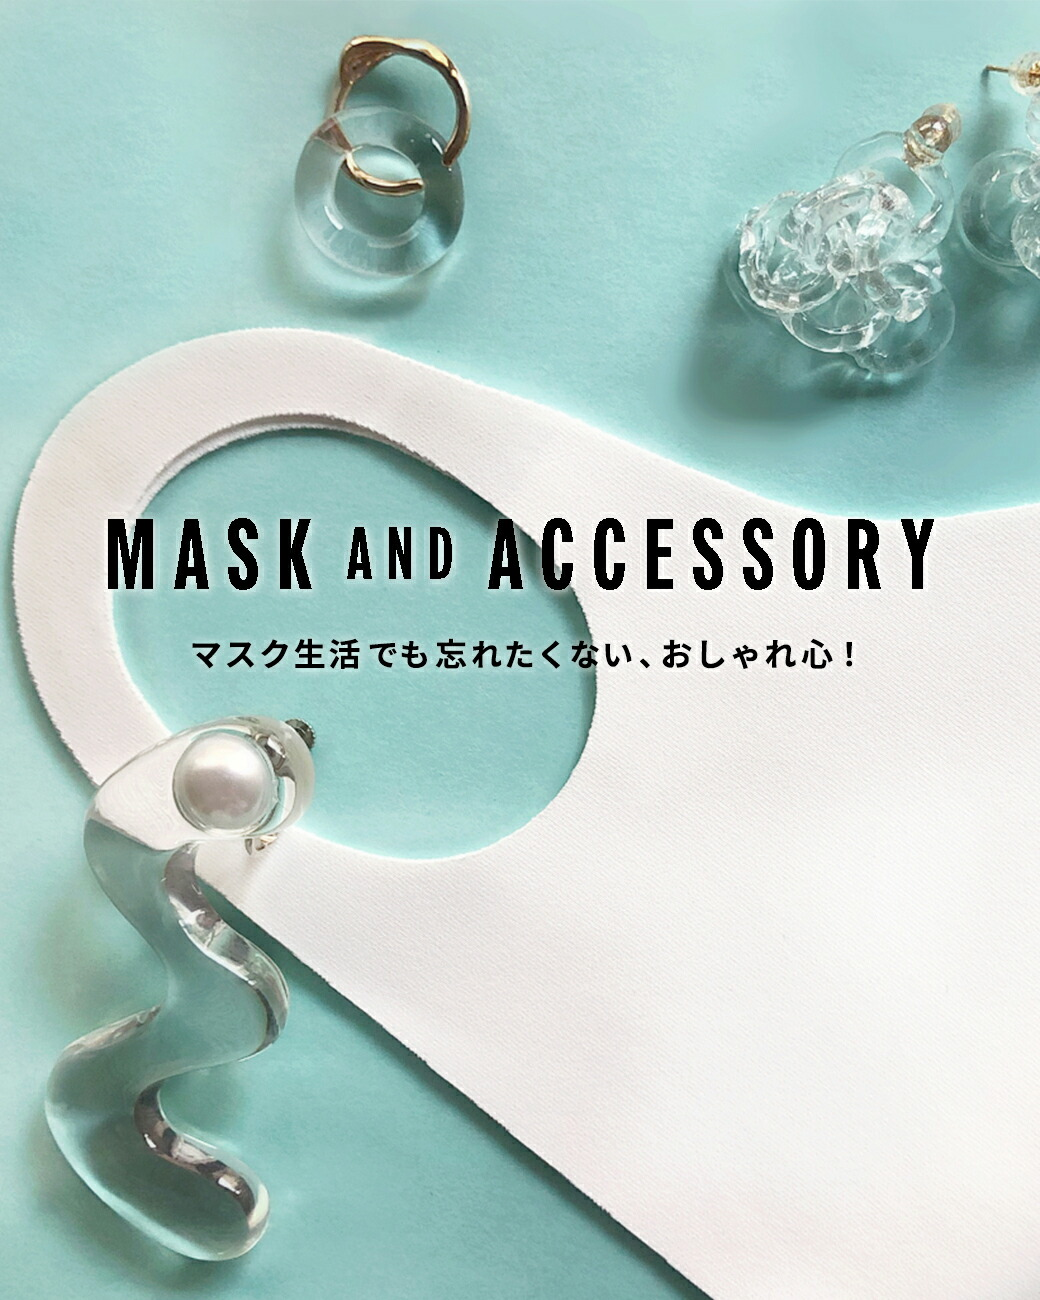 MASK AND ACCESSORY